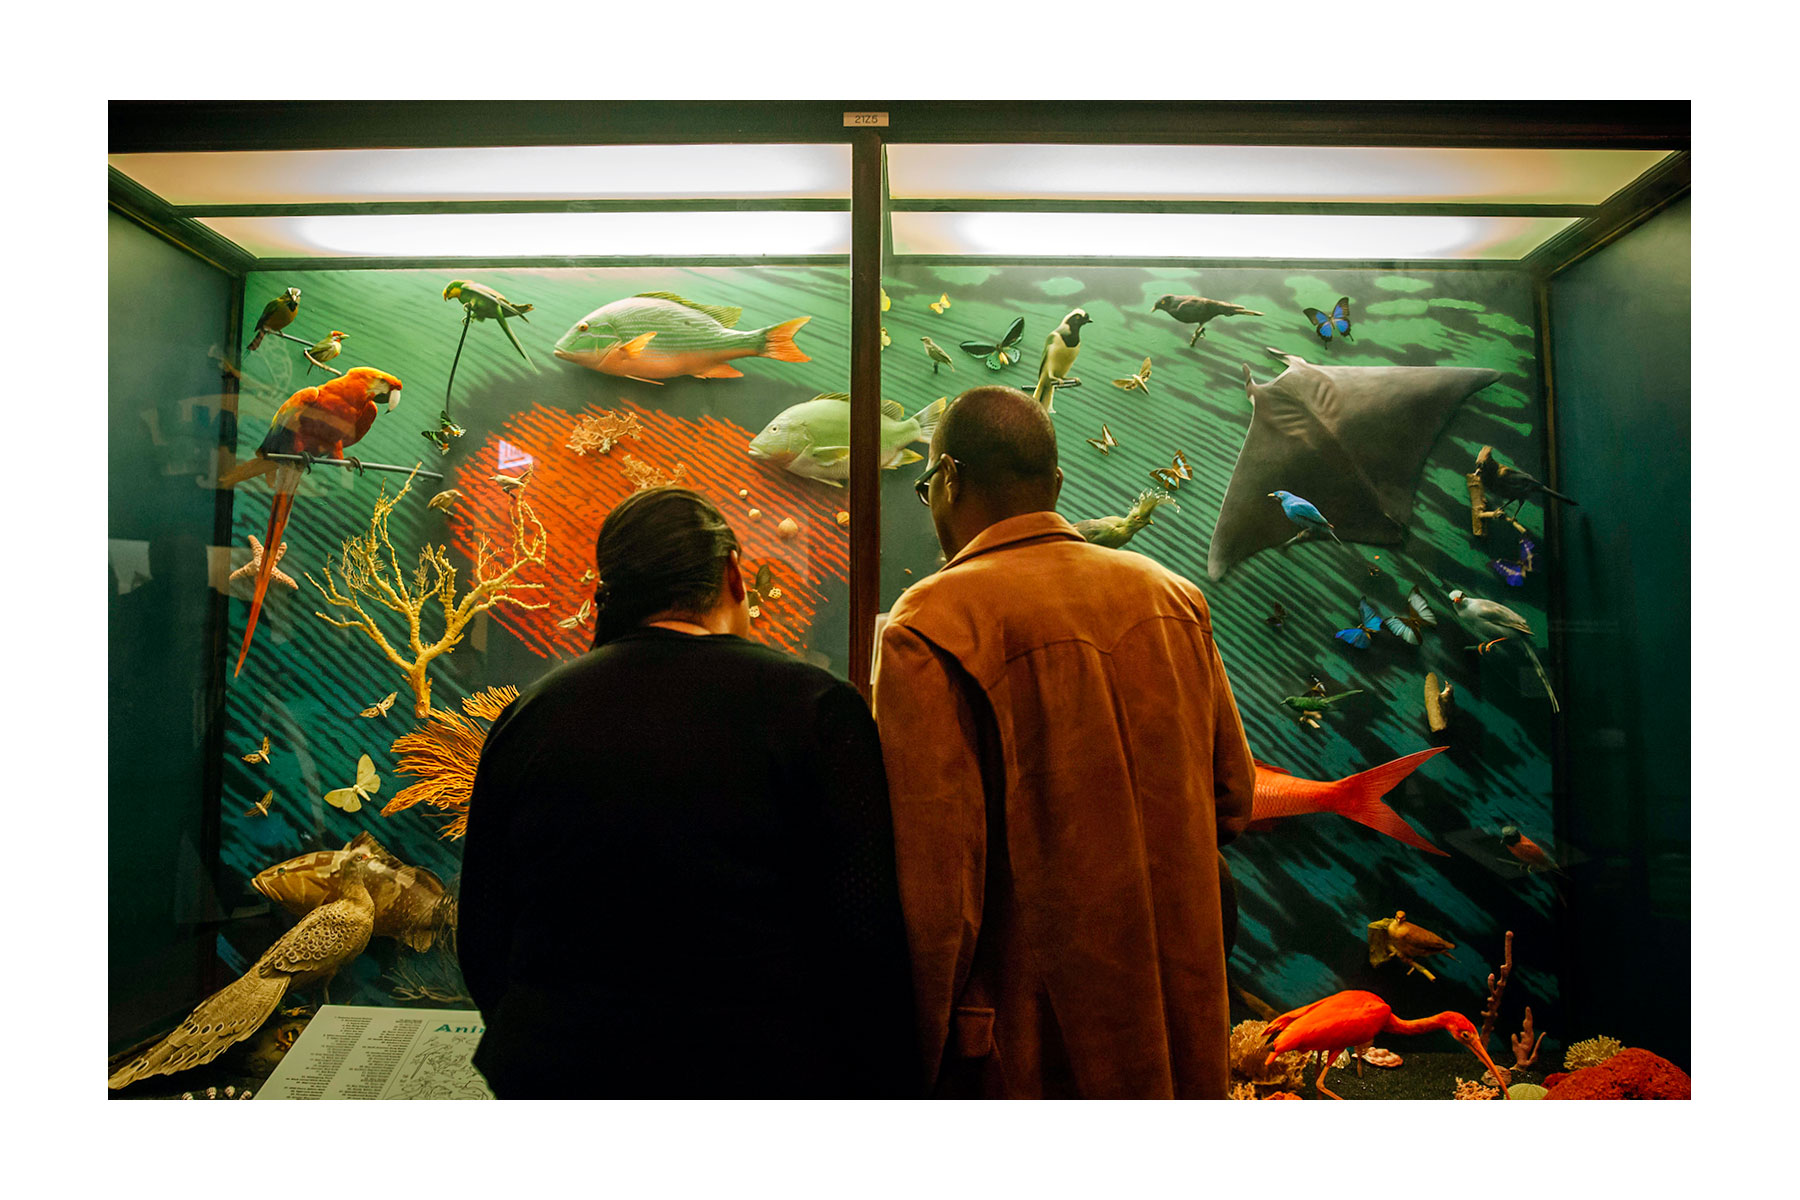 Two people look inside a diorama case containing fish, birds, and other animals.